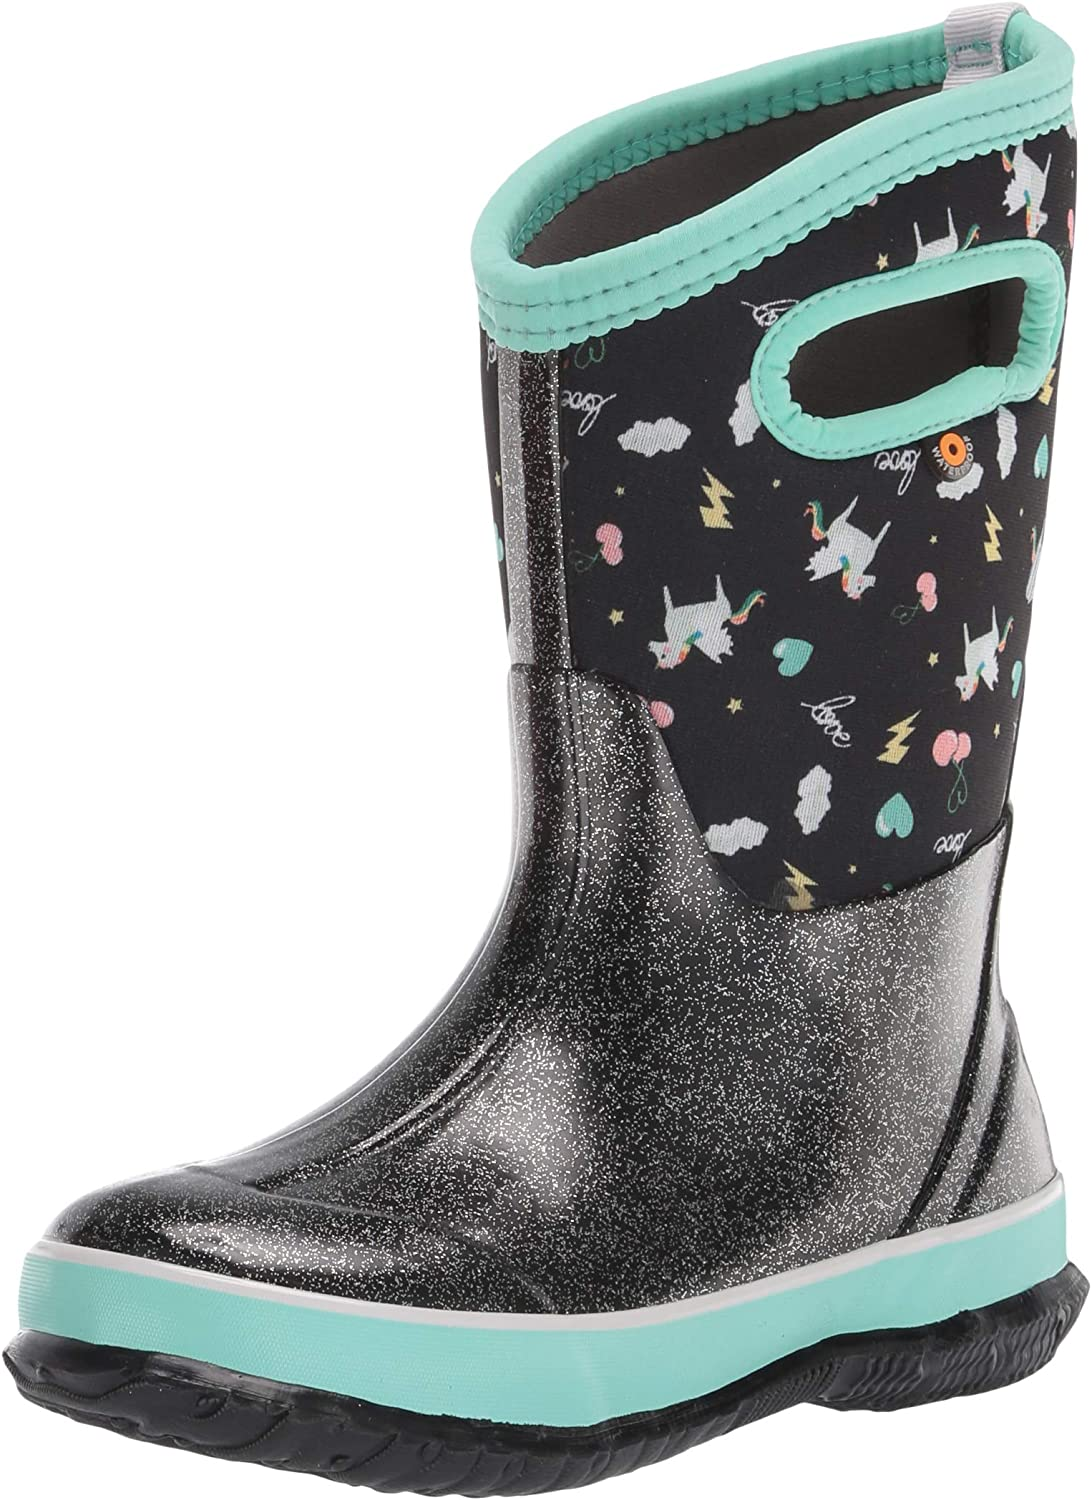 BOGS Women's Classic Fees free!! High Waterproof Rubber Insulated Neoprene S Same day shipping